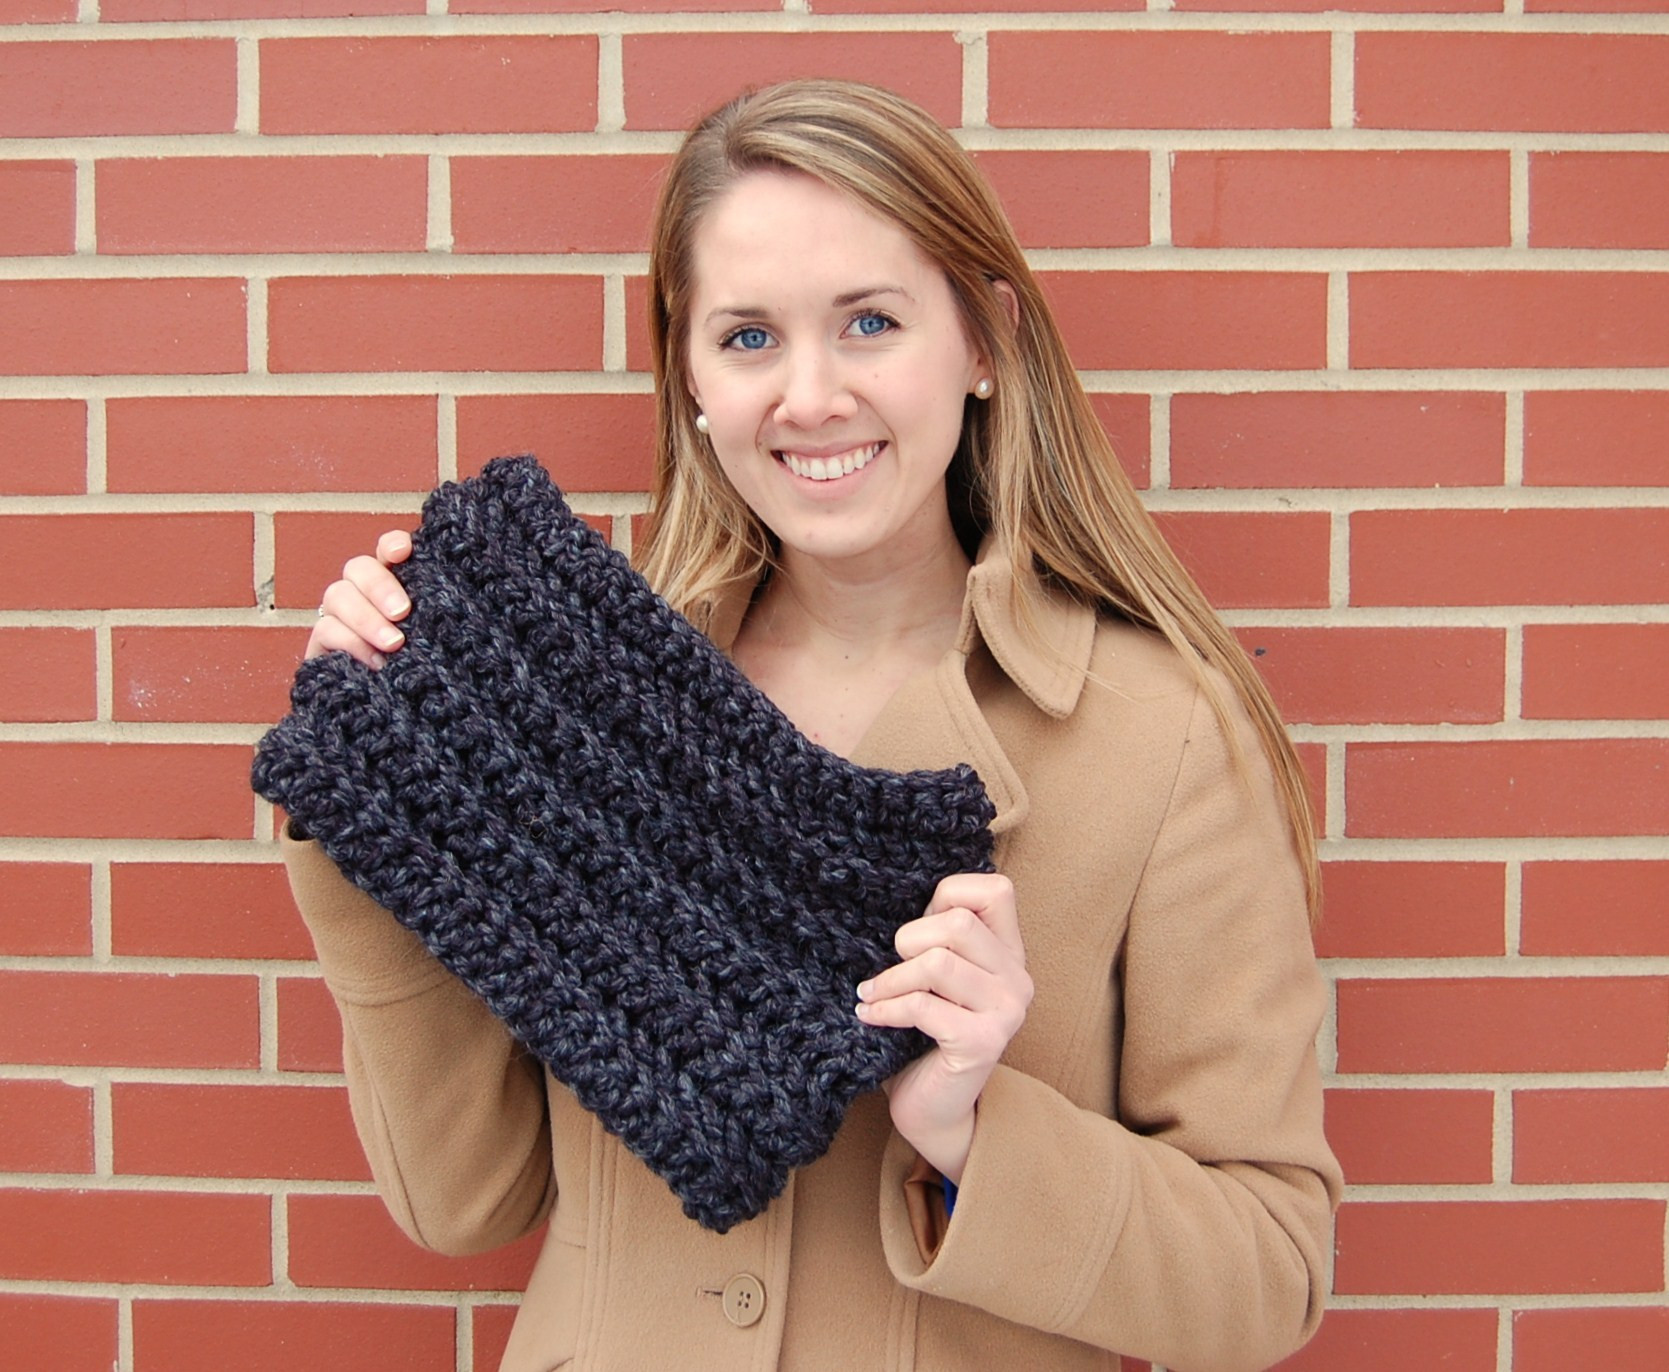 Lovely Free Chunky Crochet Cowl Pattern Cowl Scarf Of Innovative 48 Photos Cowl Scarf